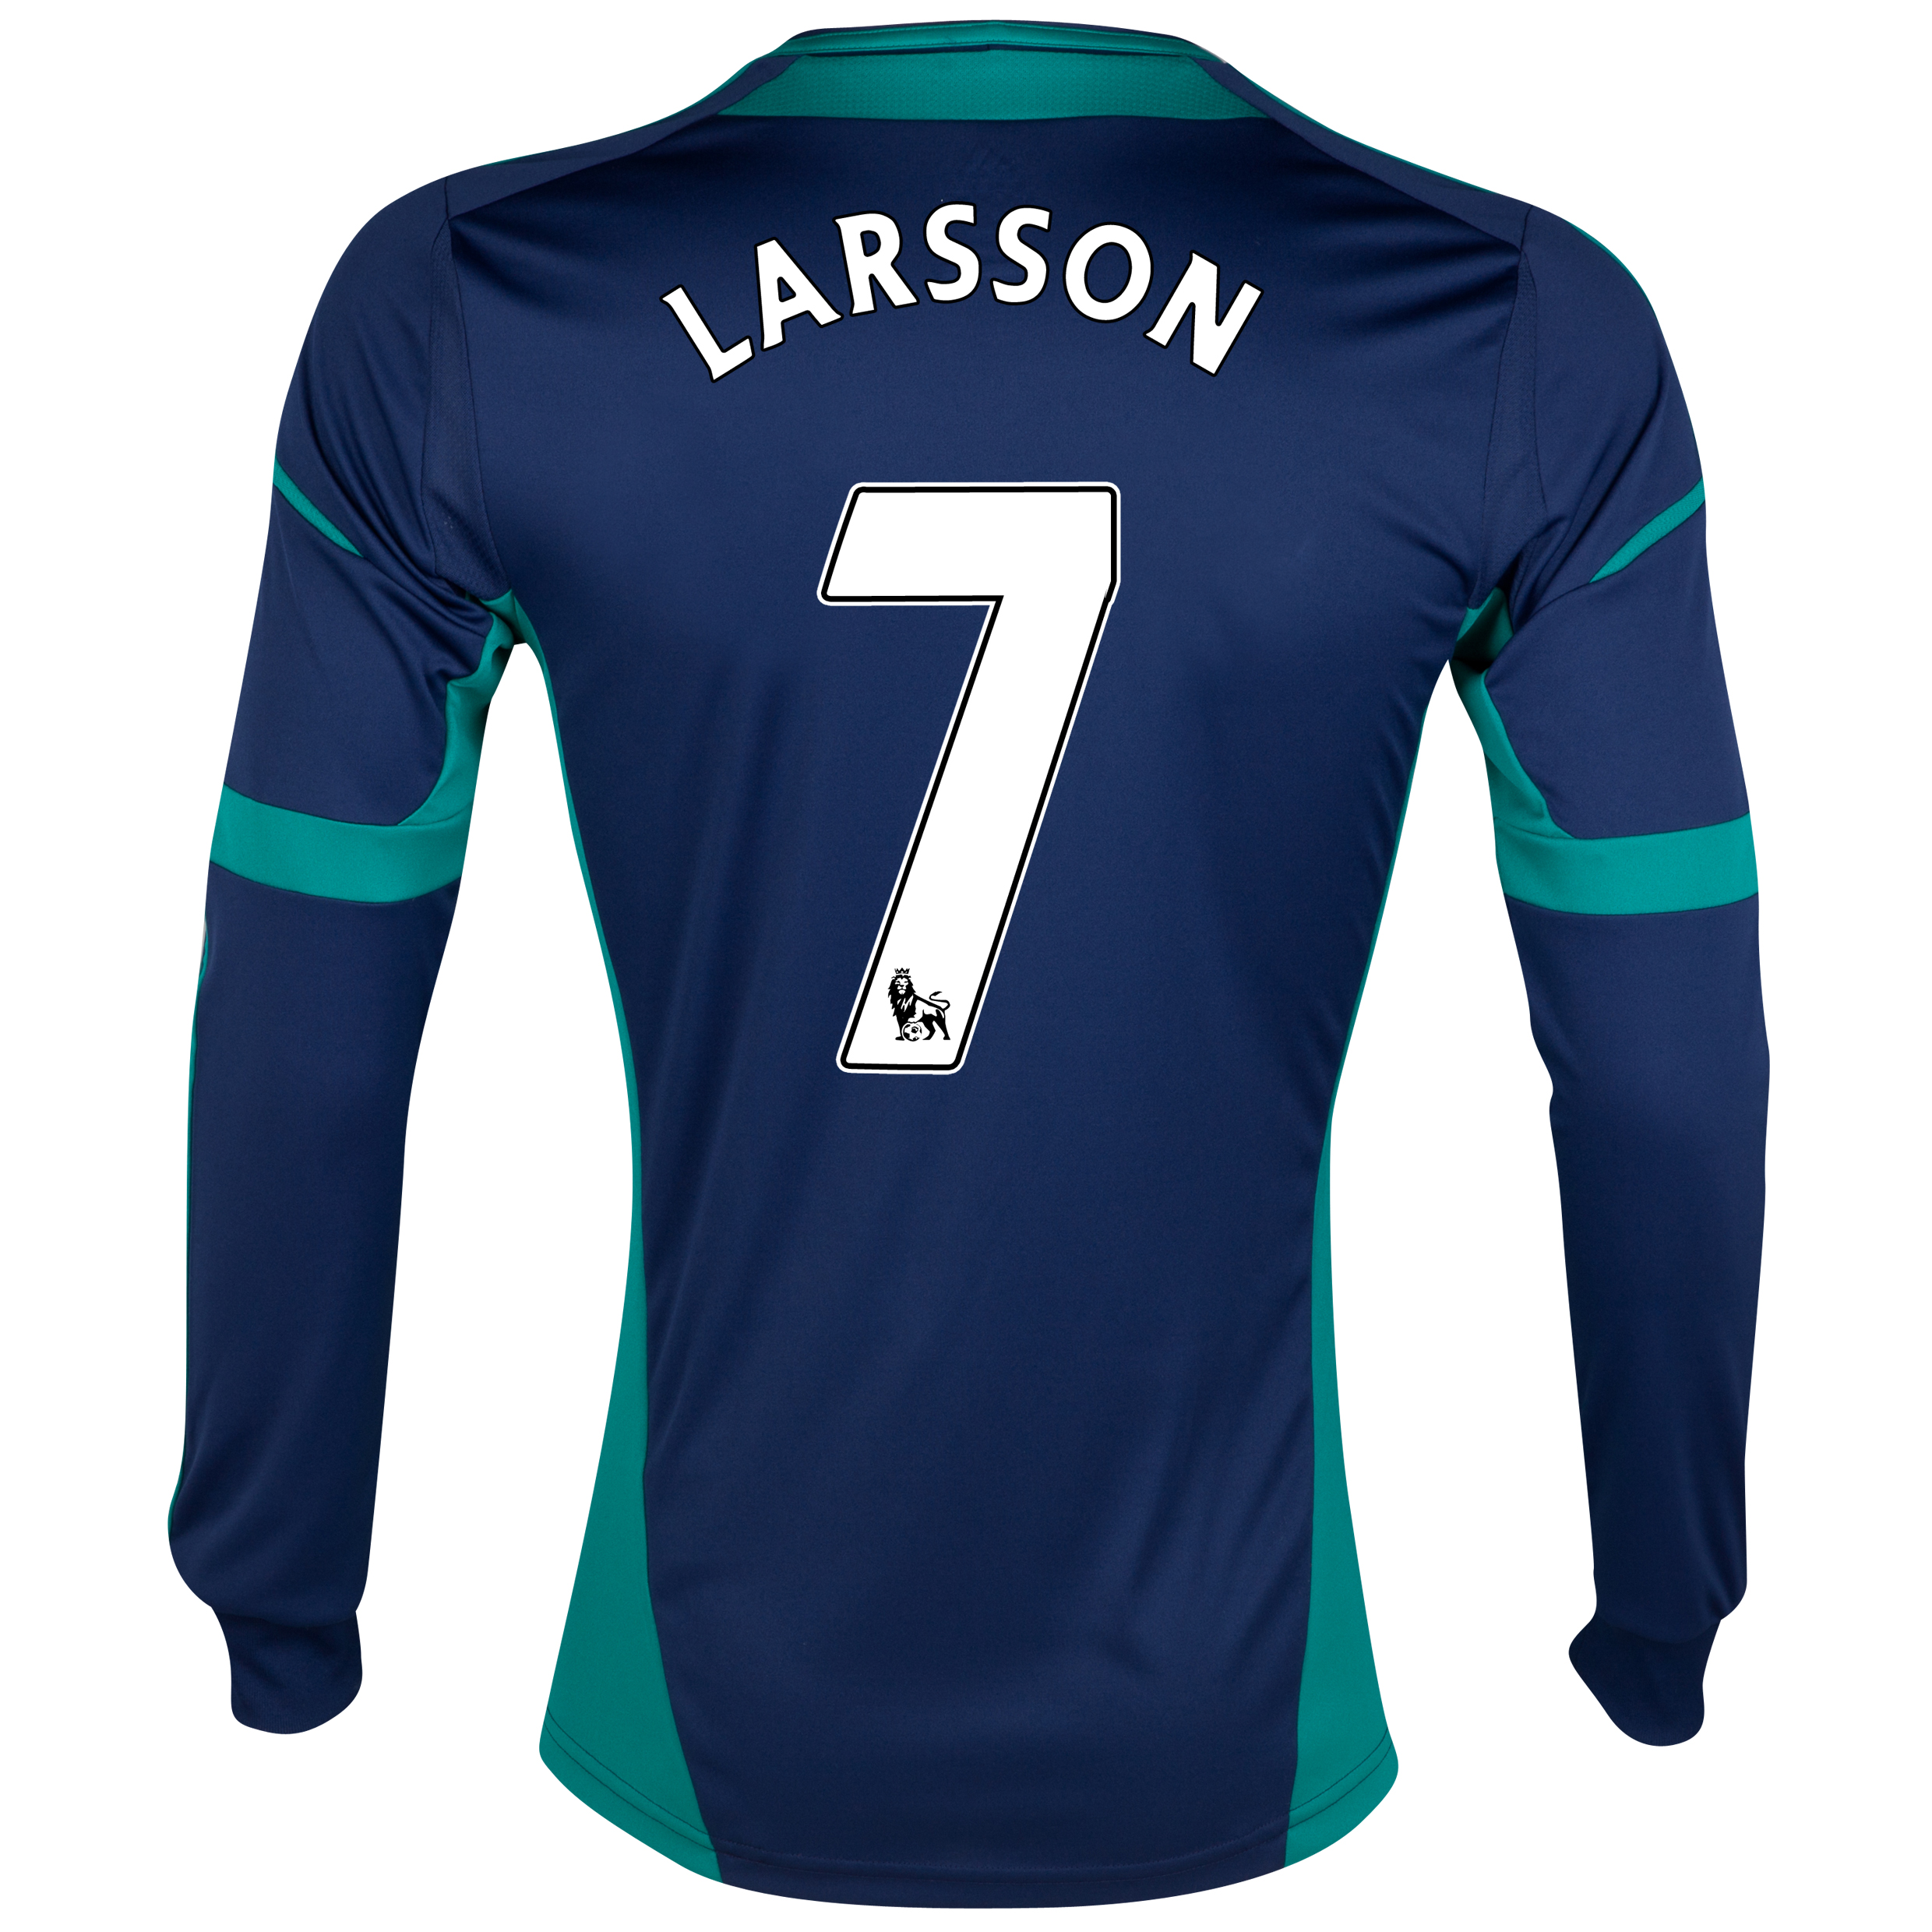 Sunderland Away Shirt 2012/13 - Long Sleeved with Larsson 7 printing